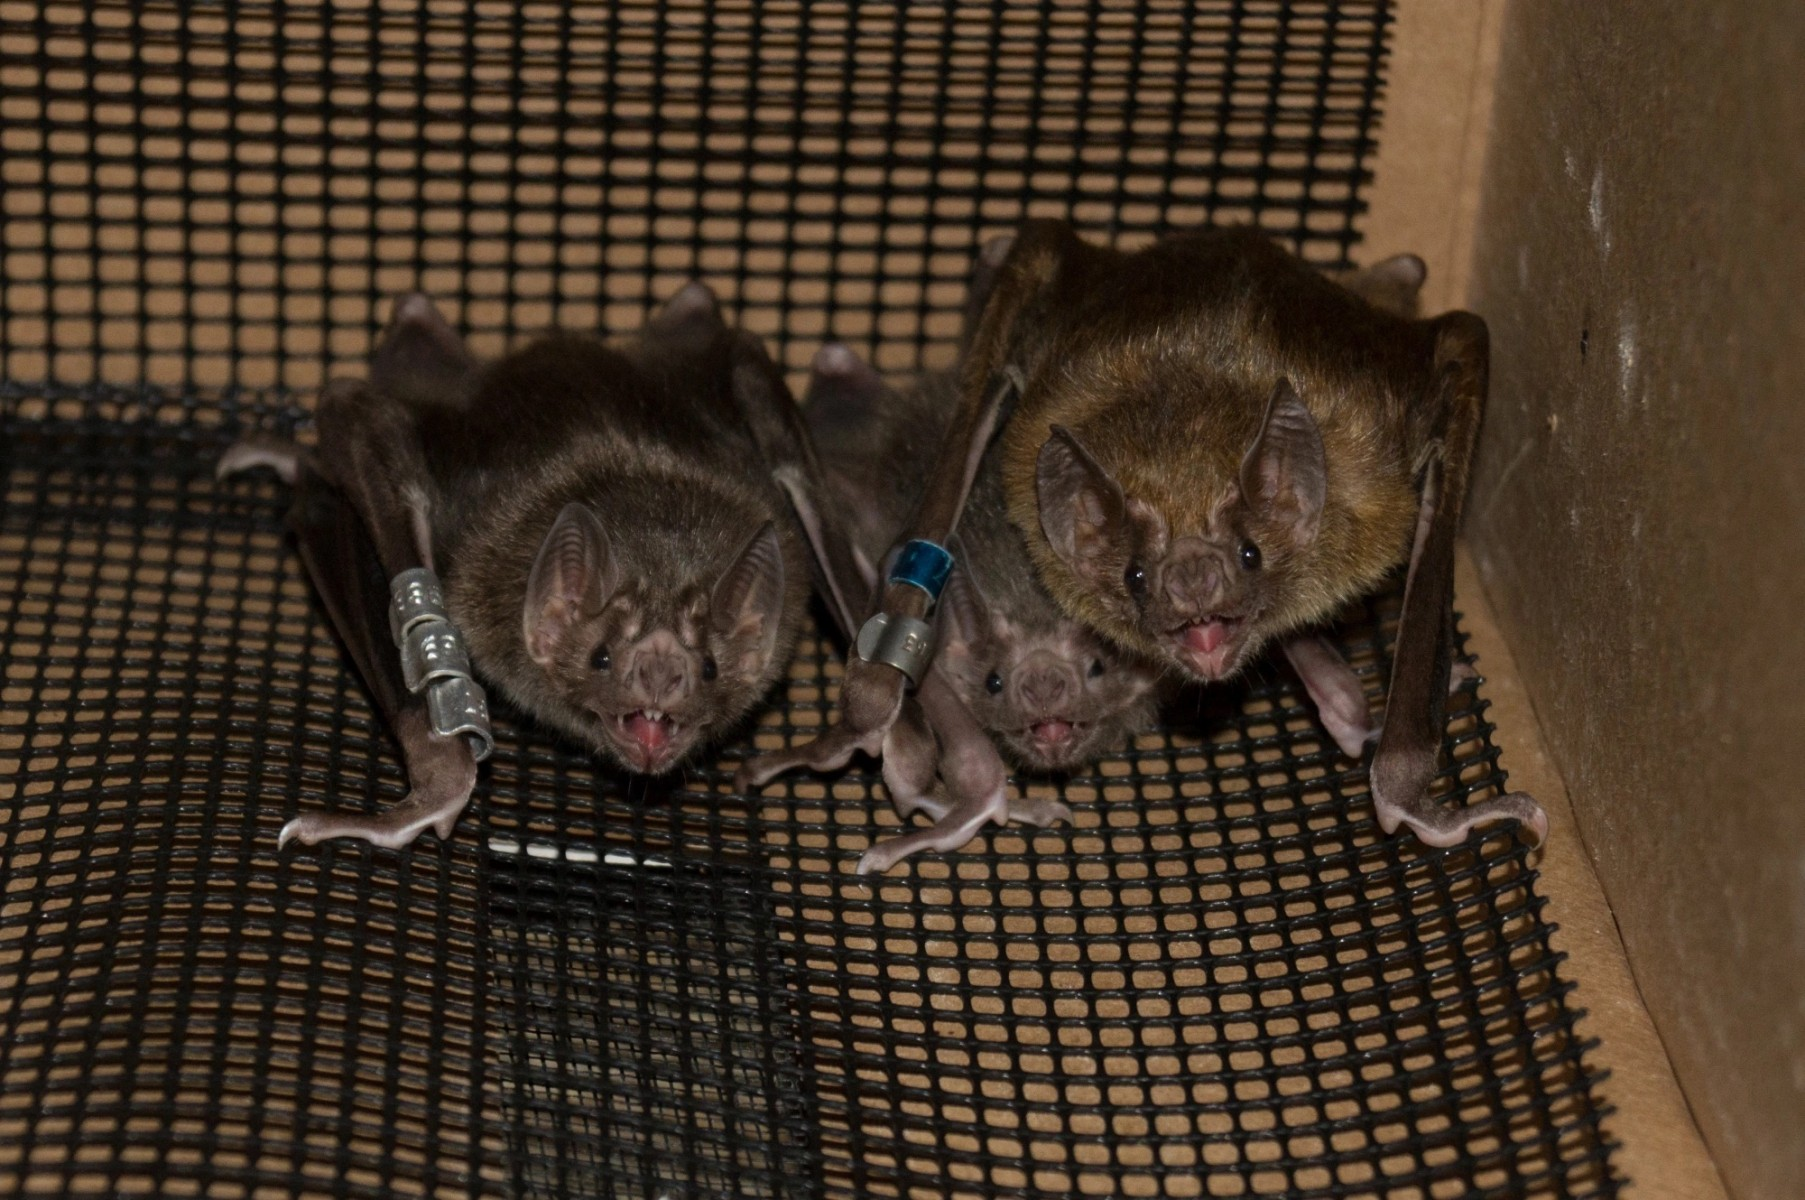 Adult and juvenile (center) vampire bats huddle together in captivity.